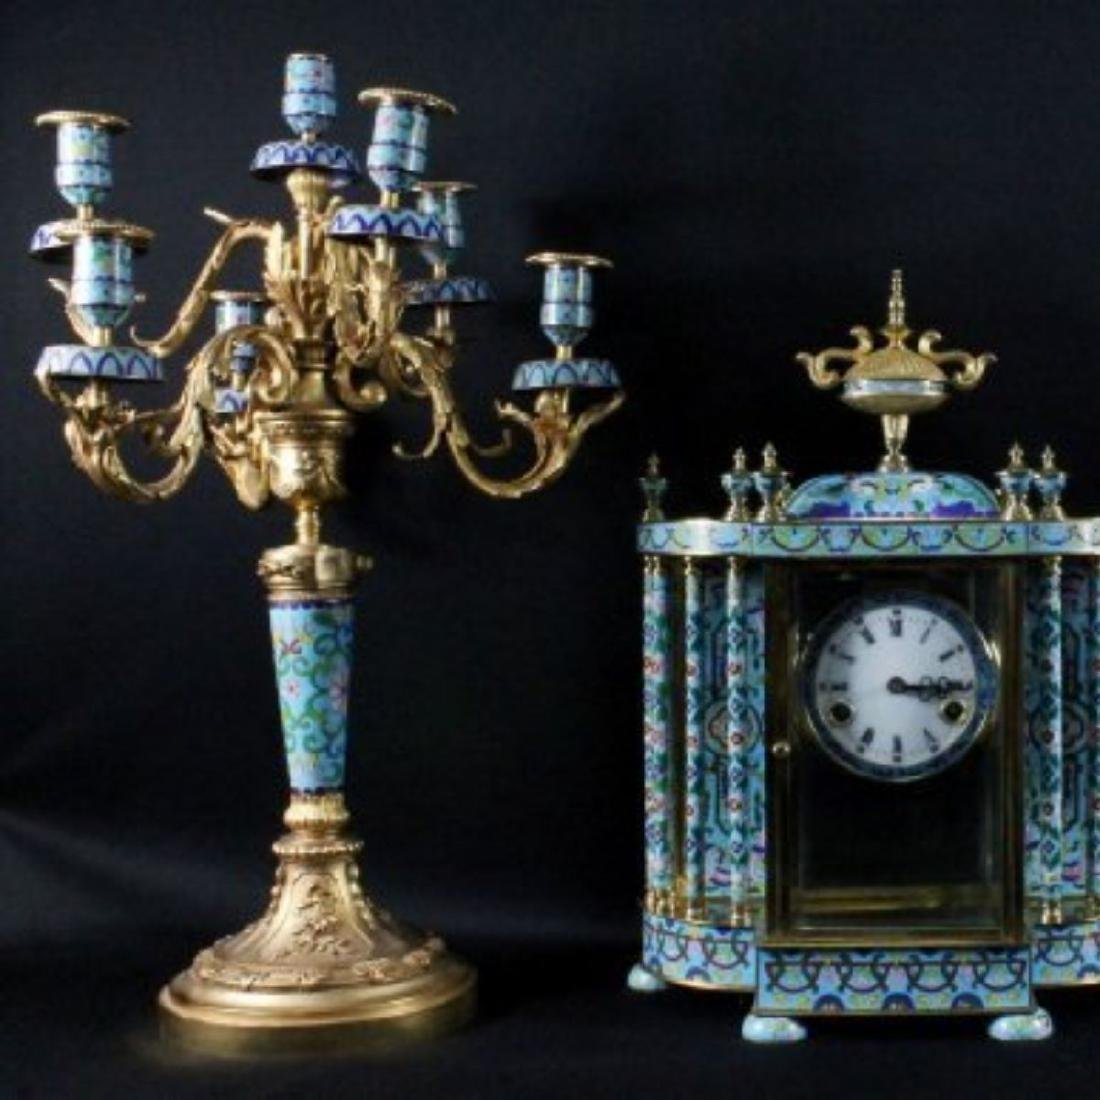 3 PC. CHINESE ENAMEL CLOCKSET